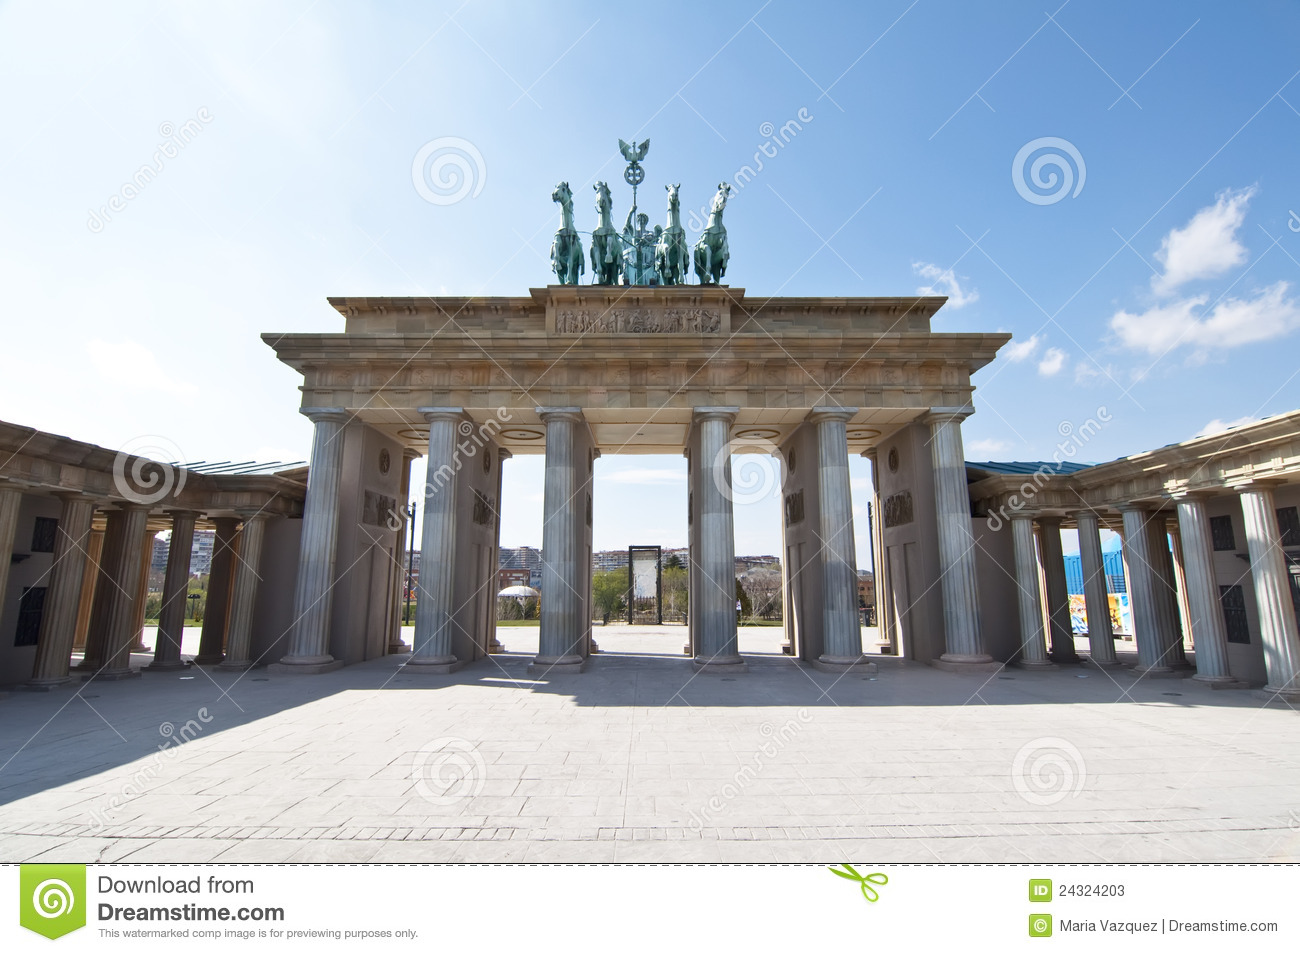 Brandenburg Gate in scale in Europa Park, Madrid